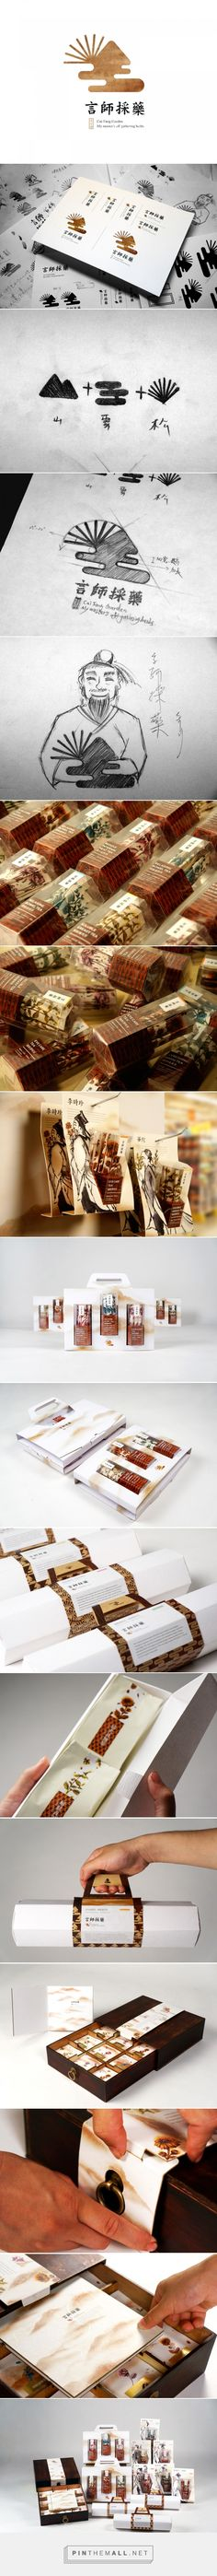 Cai Yao Chinese Medicine (TCM) packaging design concept by Taiwanese students - http://www.packagingoftheworld.com/2017/07/cai-yao-chinese-medicine-student-project.html